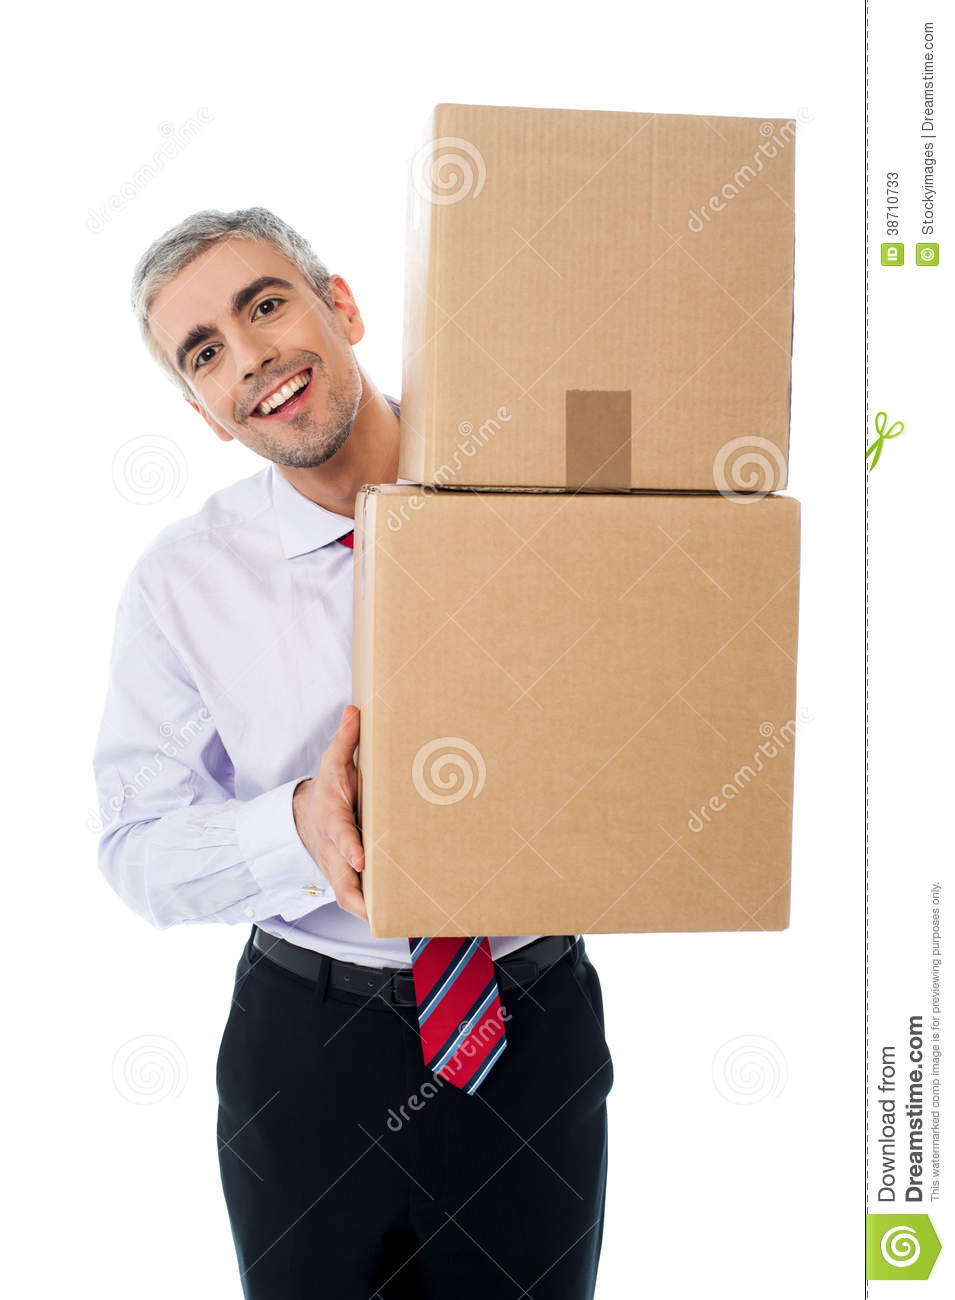 Aged man holding cardboard boxes